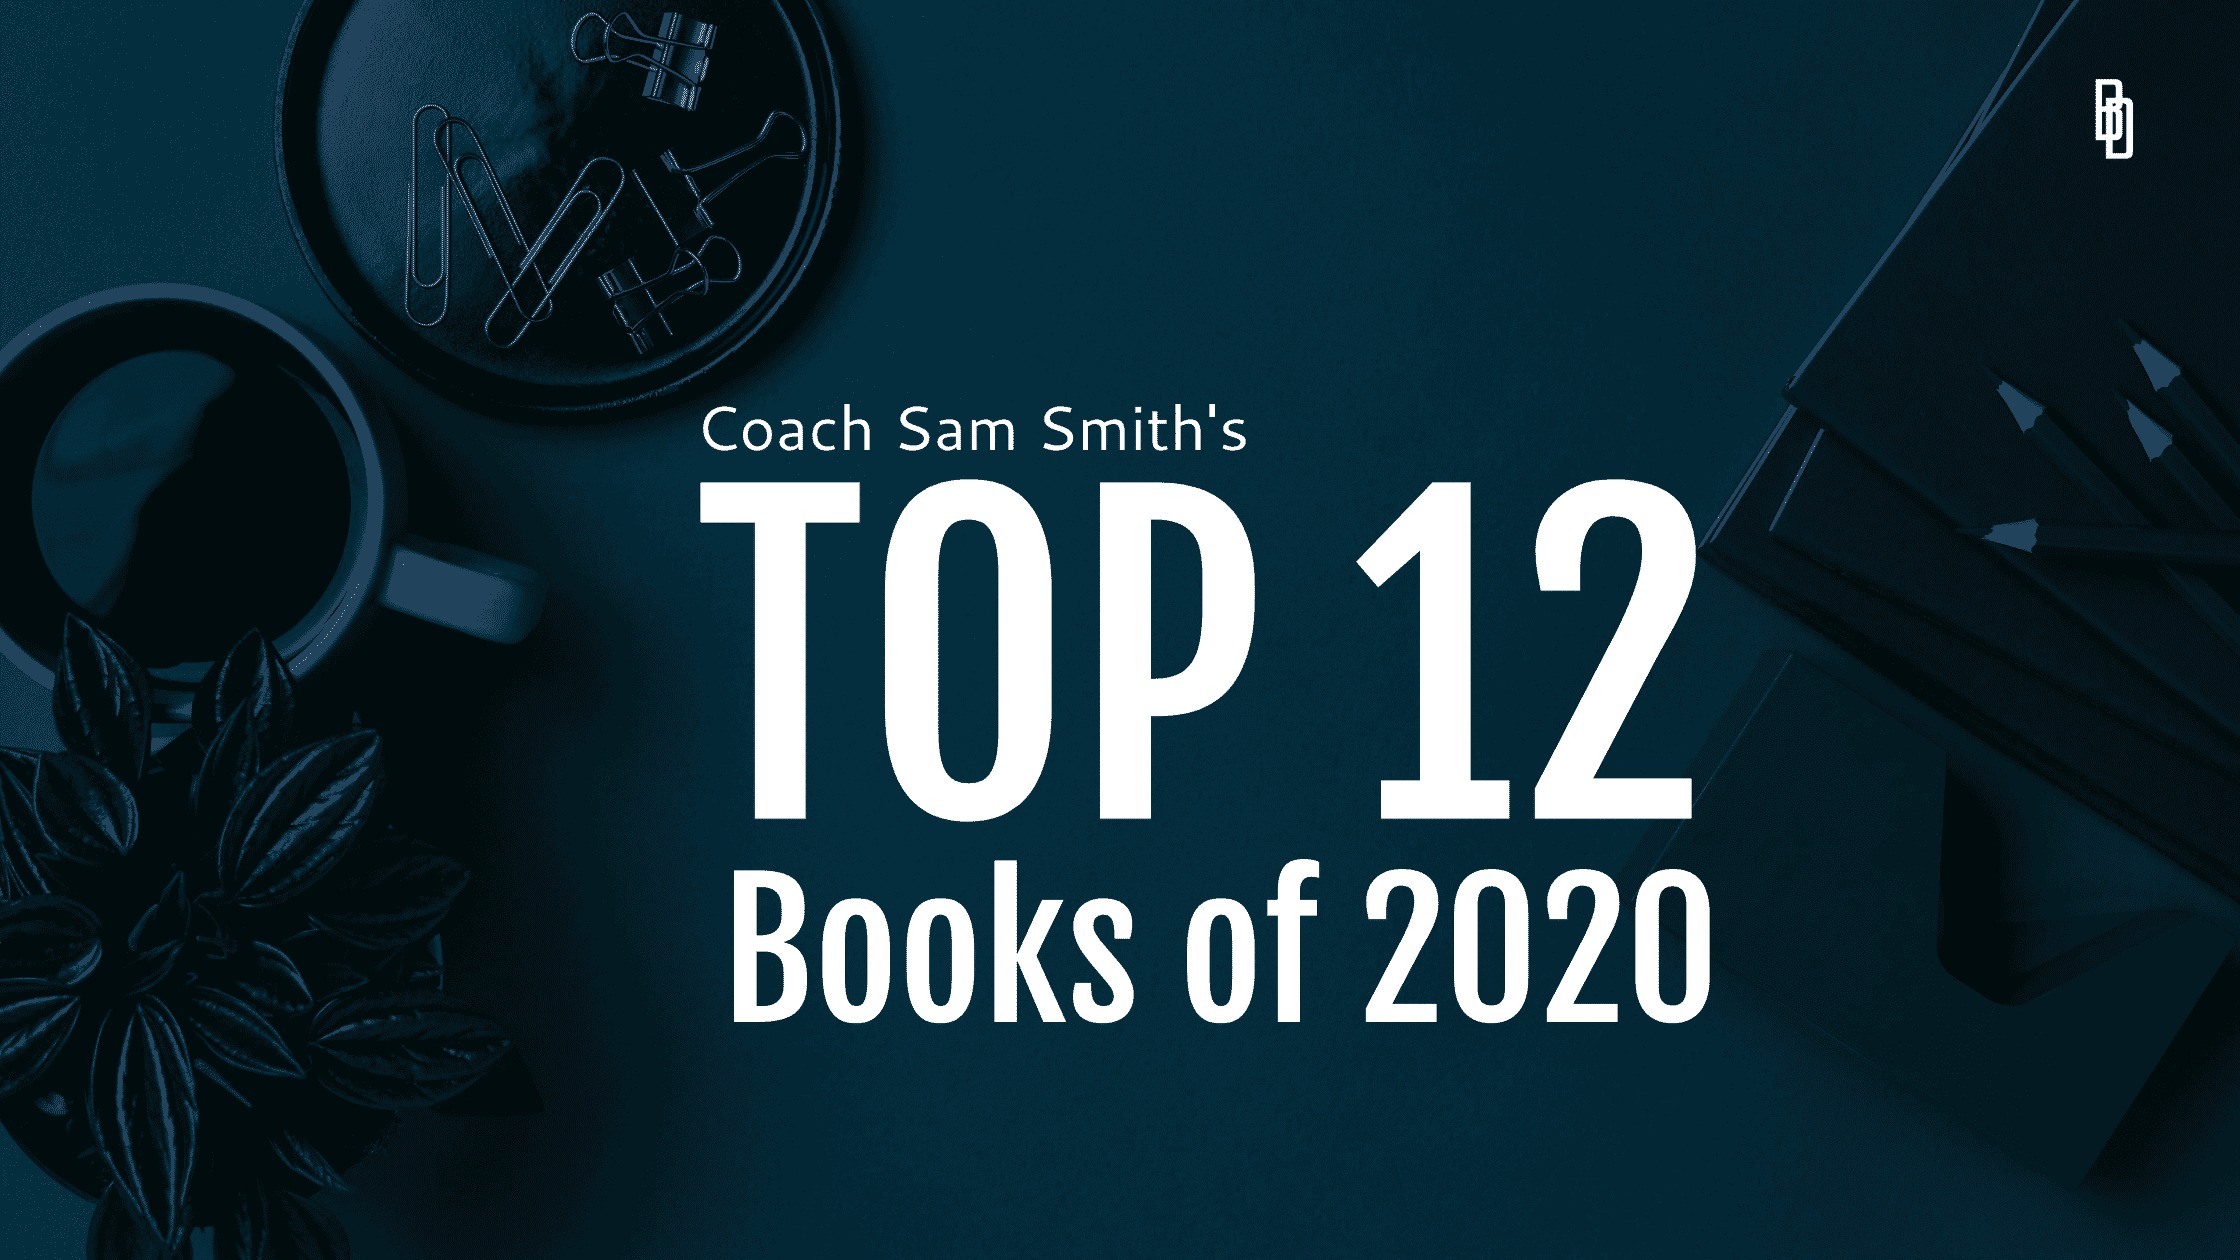 Coach Sam Smith's Top 12 Books of 2020